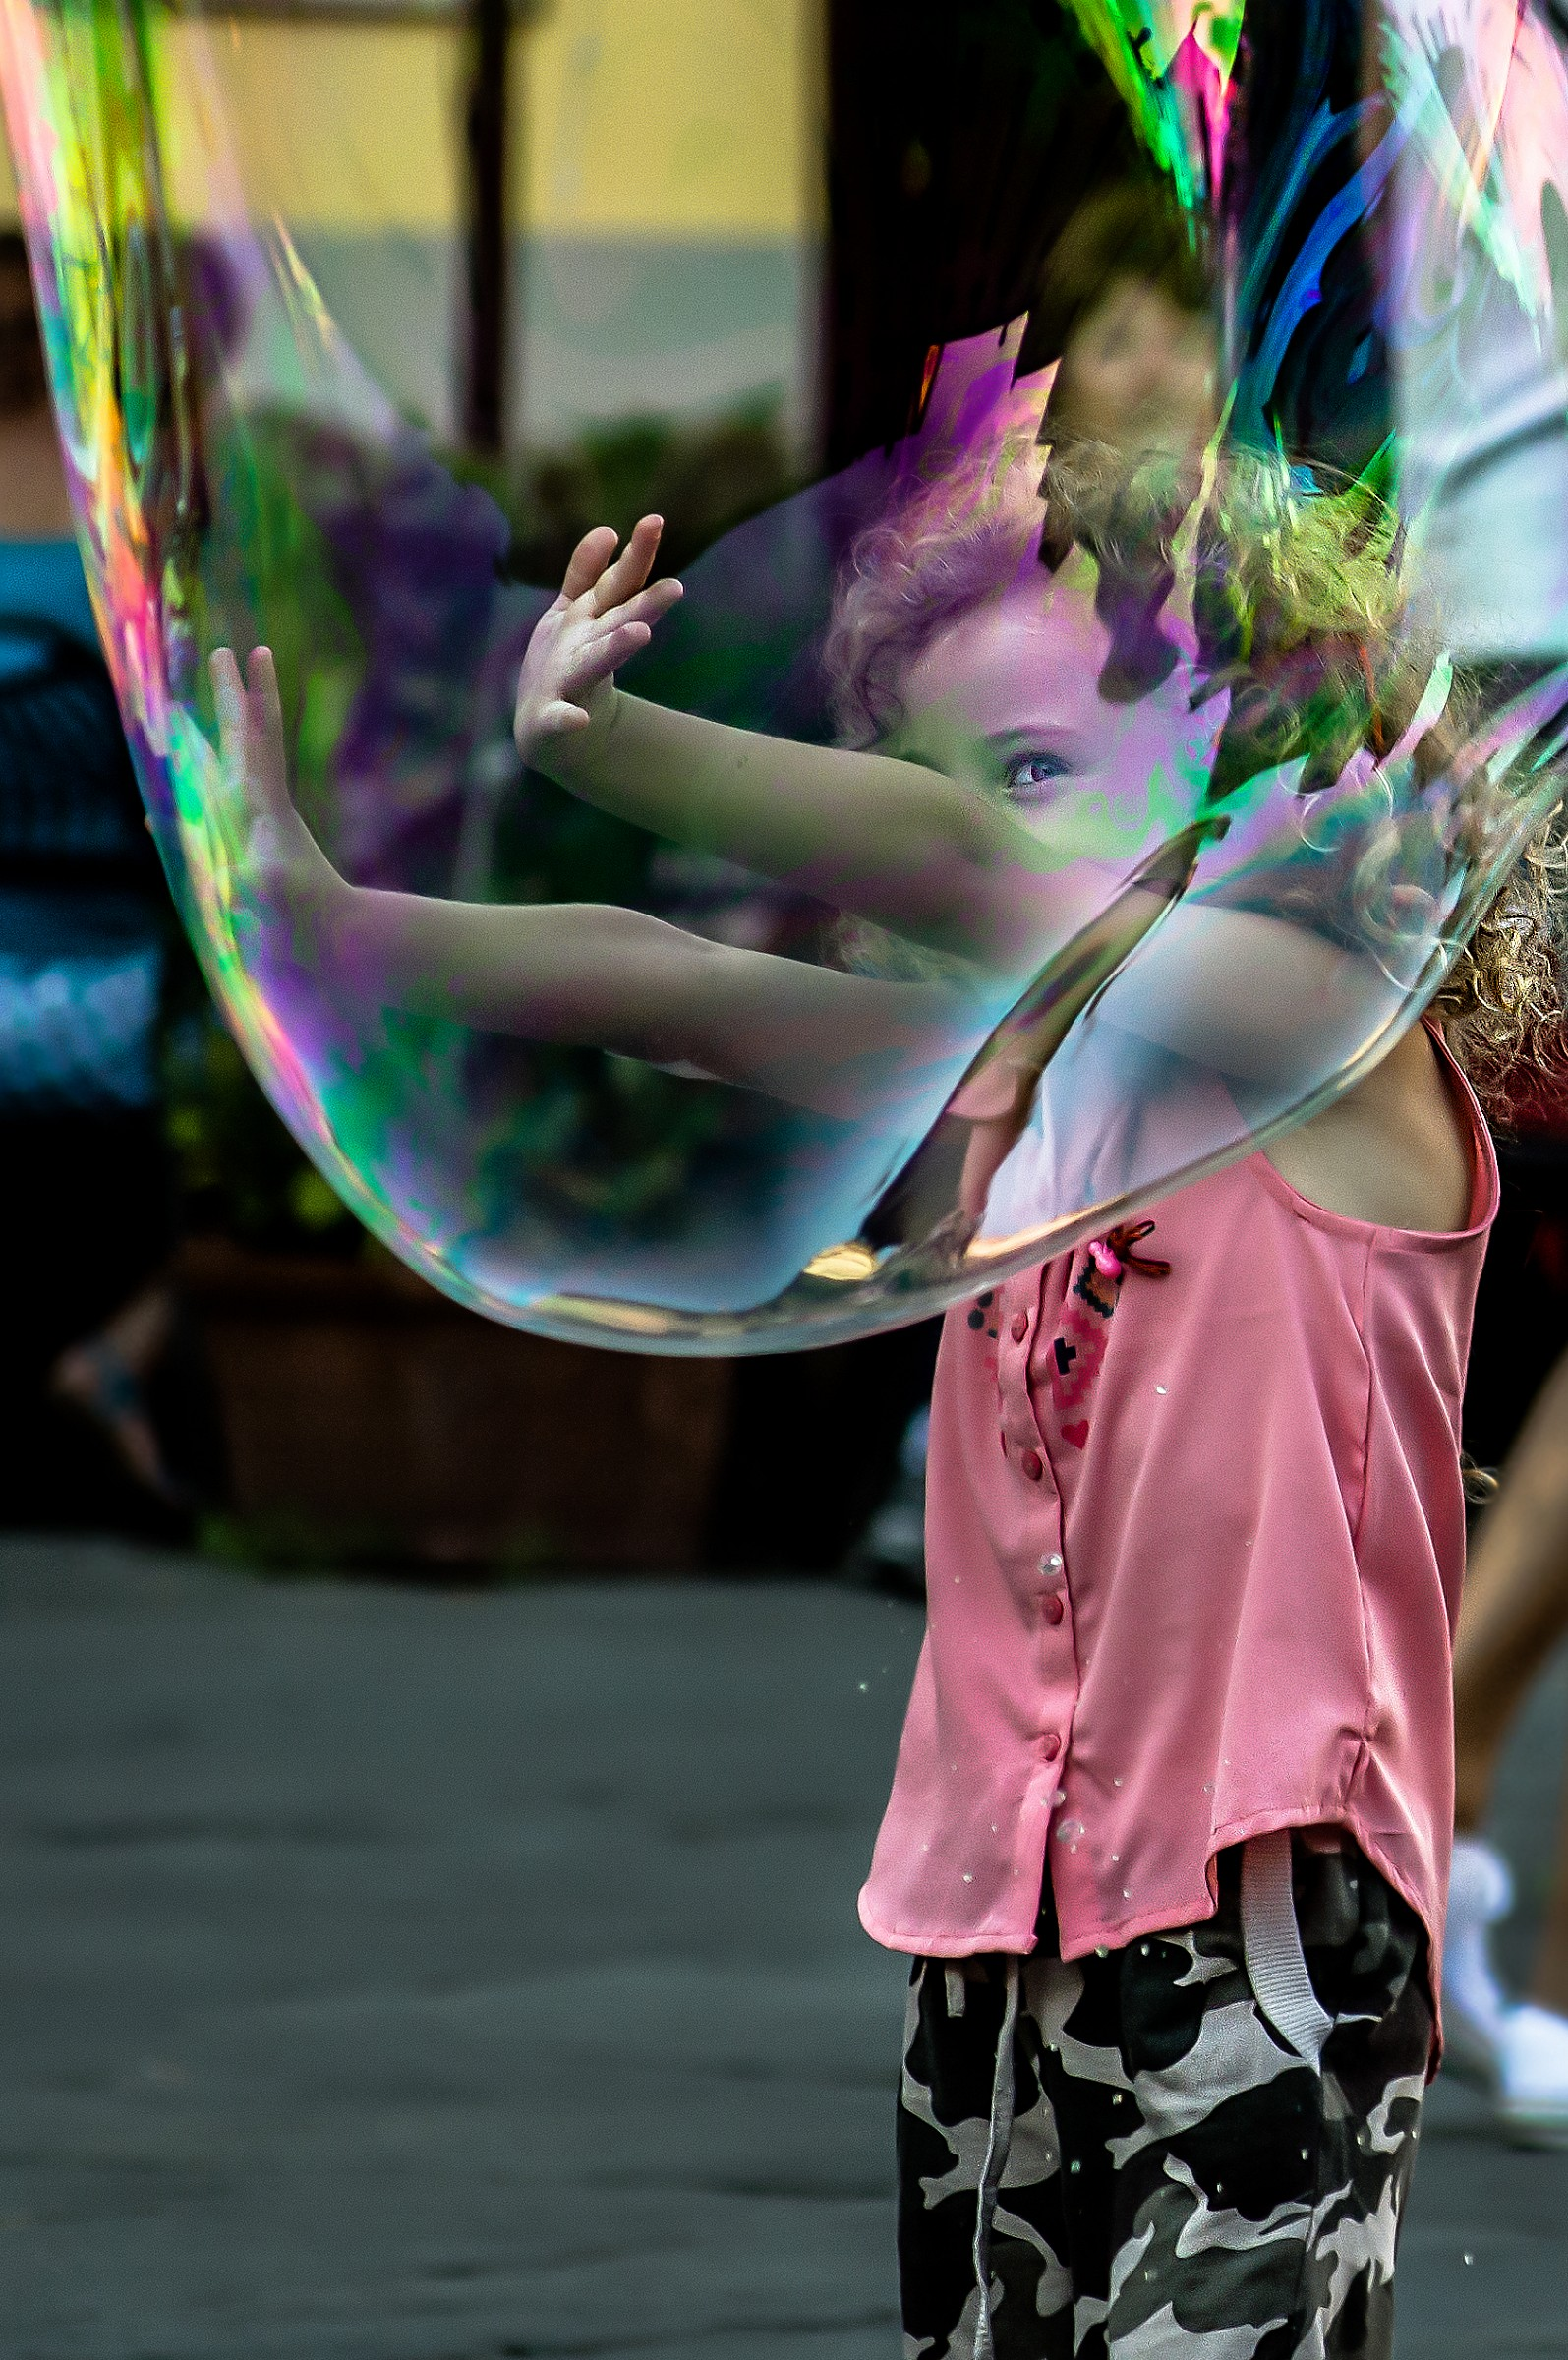 Youthness in the bubble ......